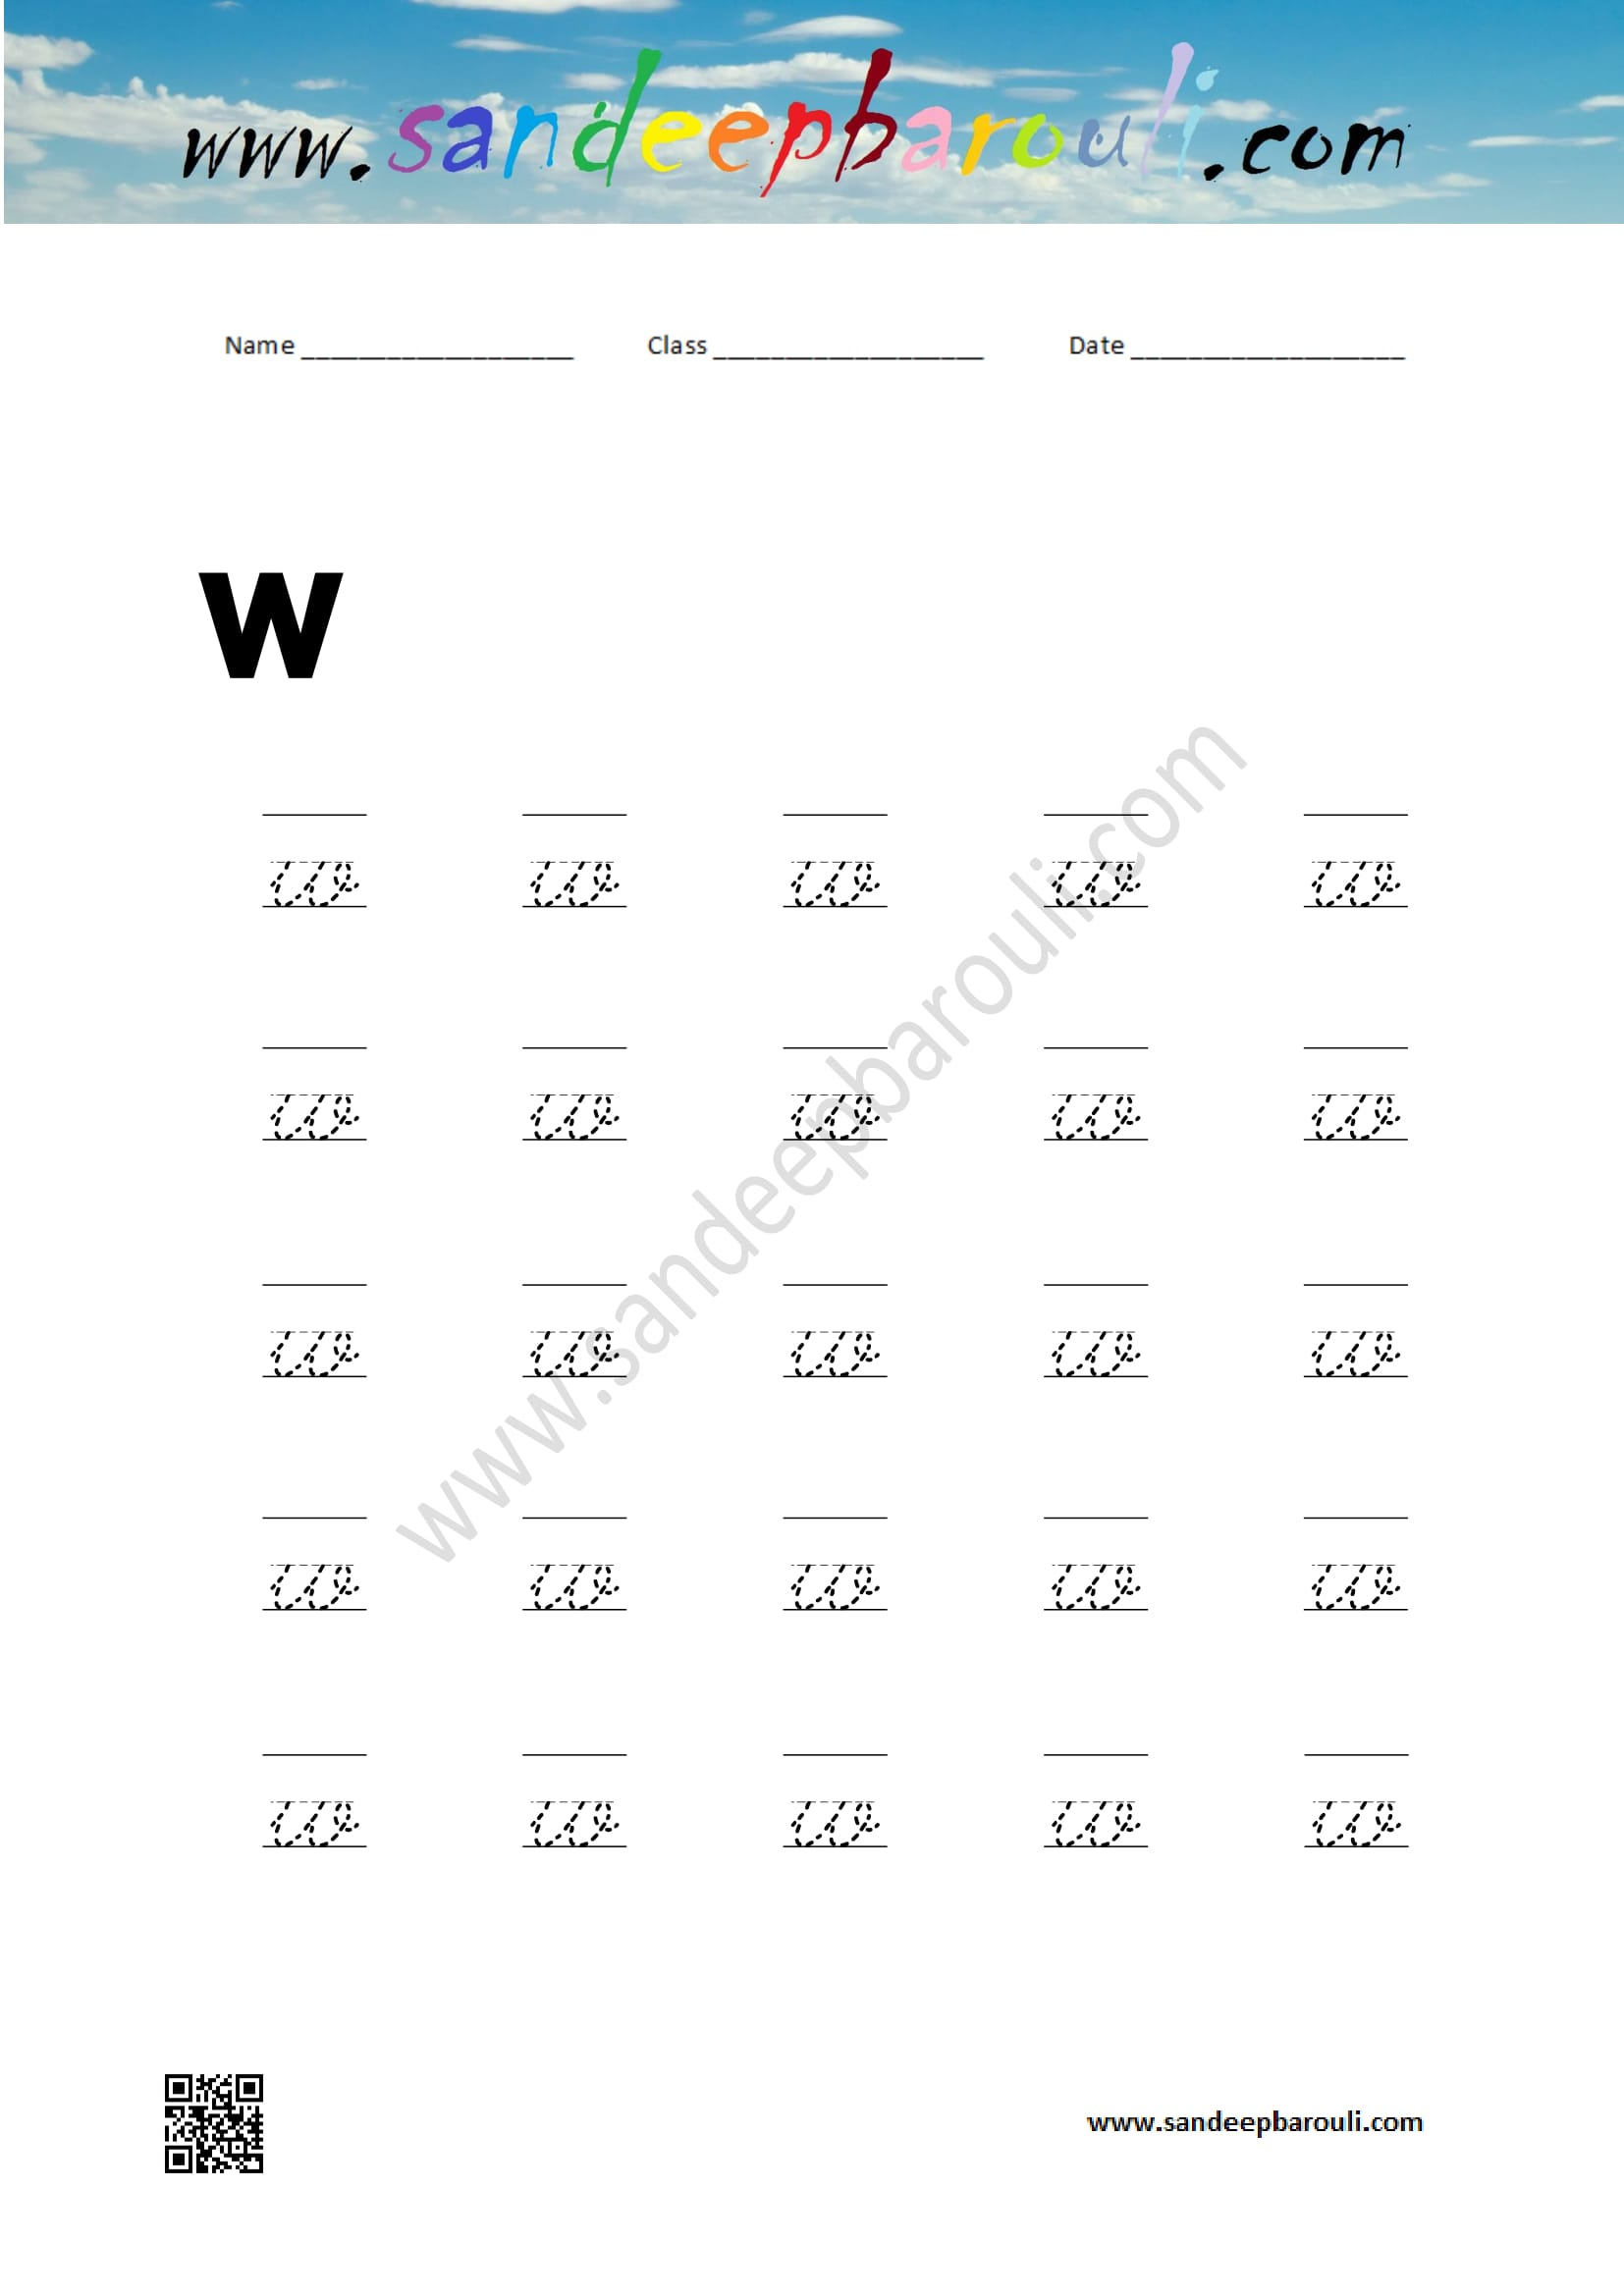 Cursive Writing Worksheet For Small Letters W Sandeepbarouli